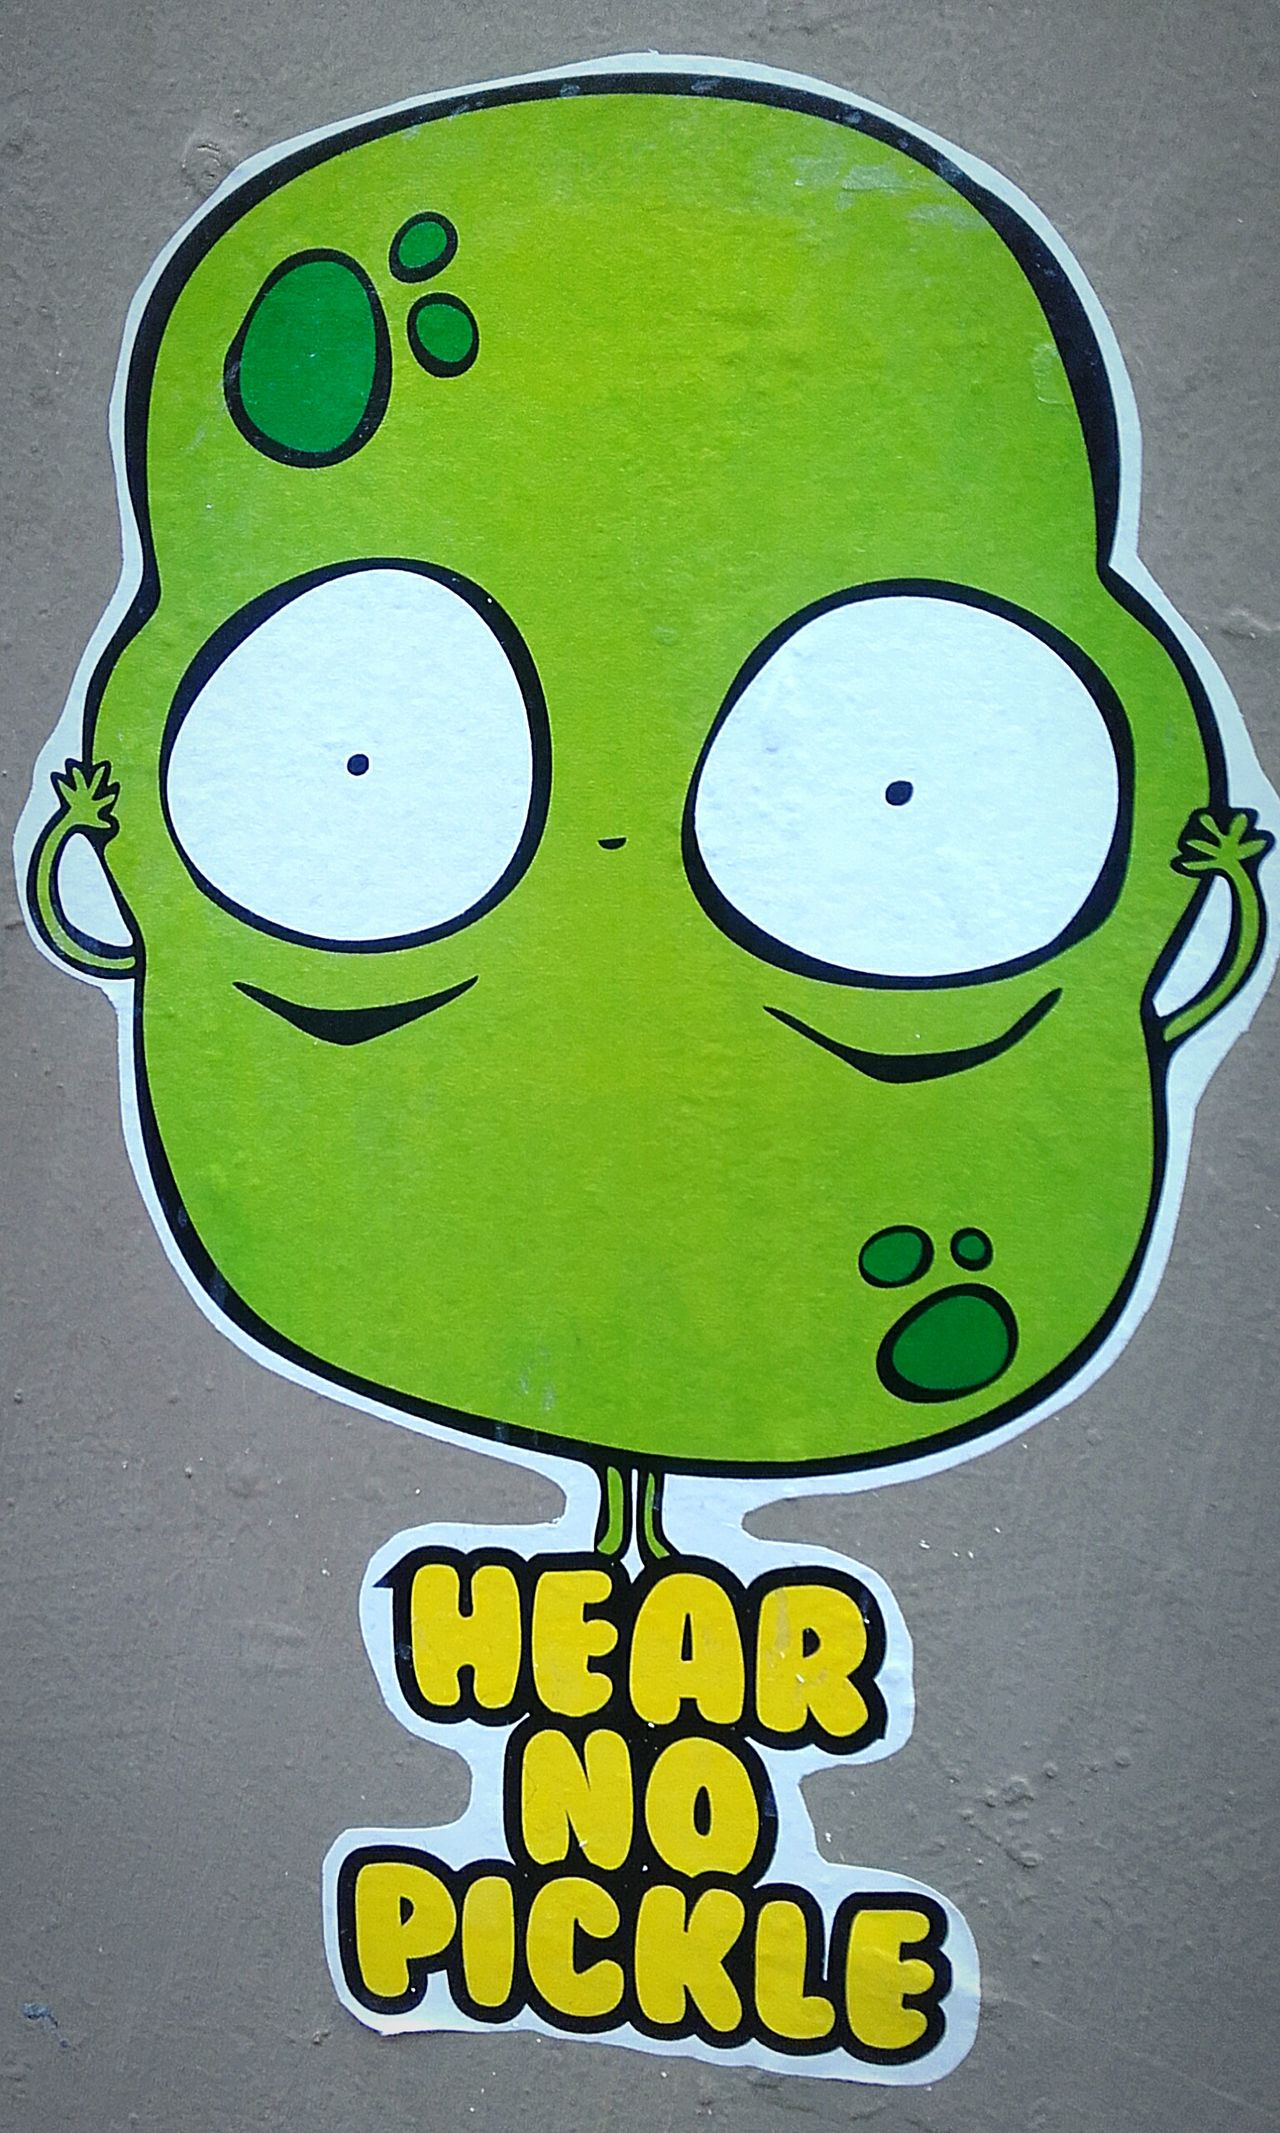 Hear No Pickle Wallart Stickers And Stickers Stickerart Streetart/graffiti Street Art Streetart Wall Art Sticker Wall Stickerseverywhere Sticker Sticker Slapper Sticker Art Stickers Stickers Stickers Pickle Street Art/Graffiti Stickers Wall Sticker Stickerporn Wall-stickers Stickerama Pickles Stickerslapper Wallsticker Stickerslappin